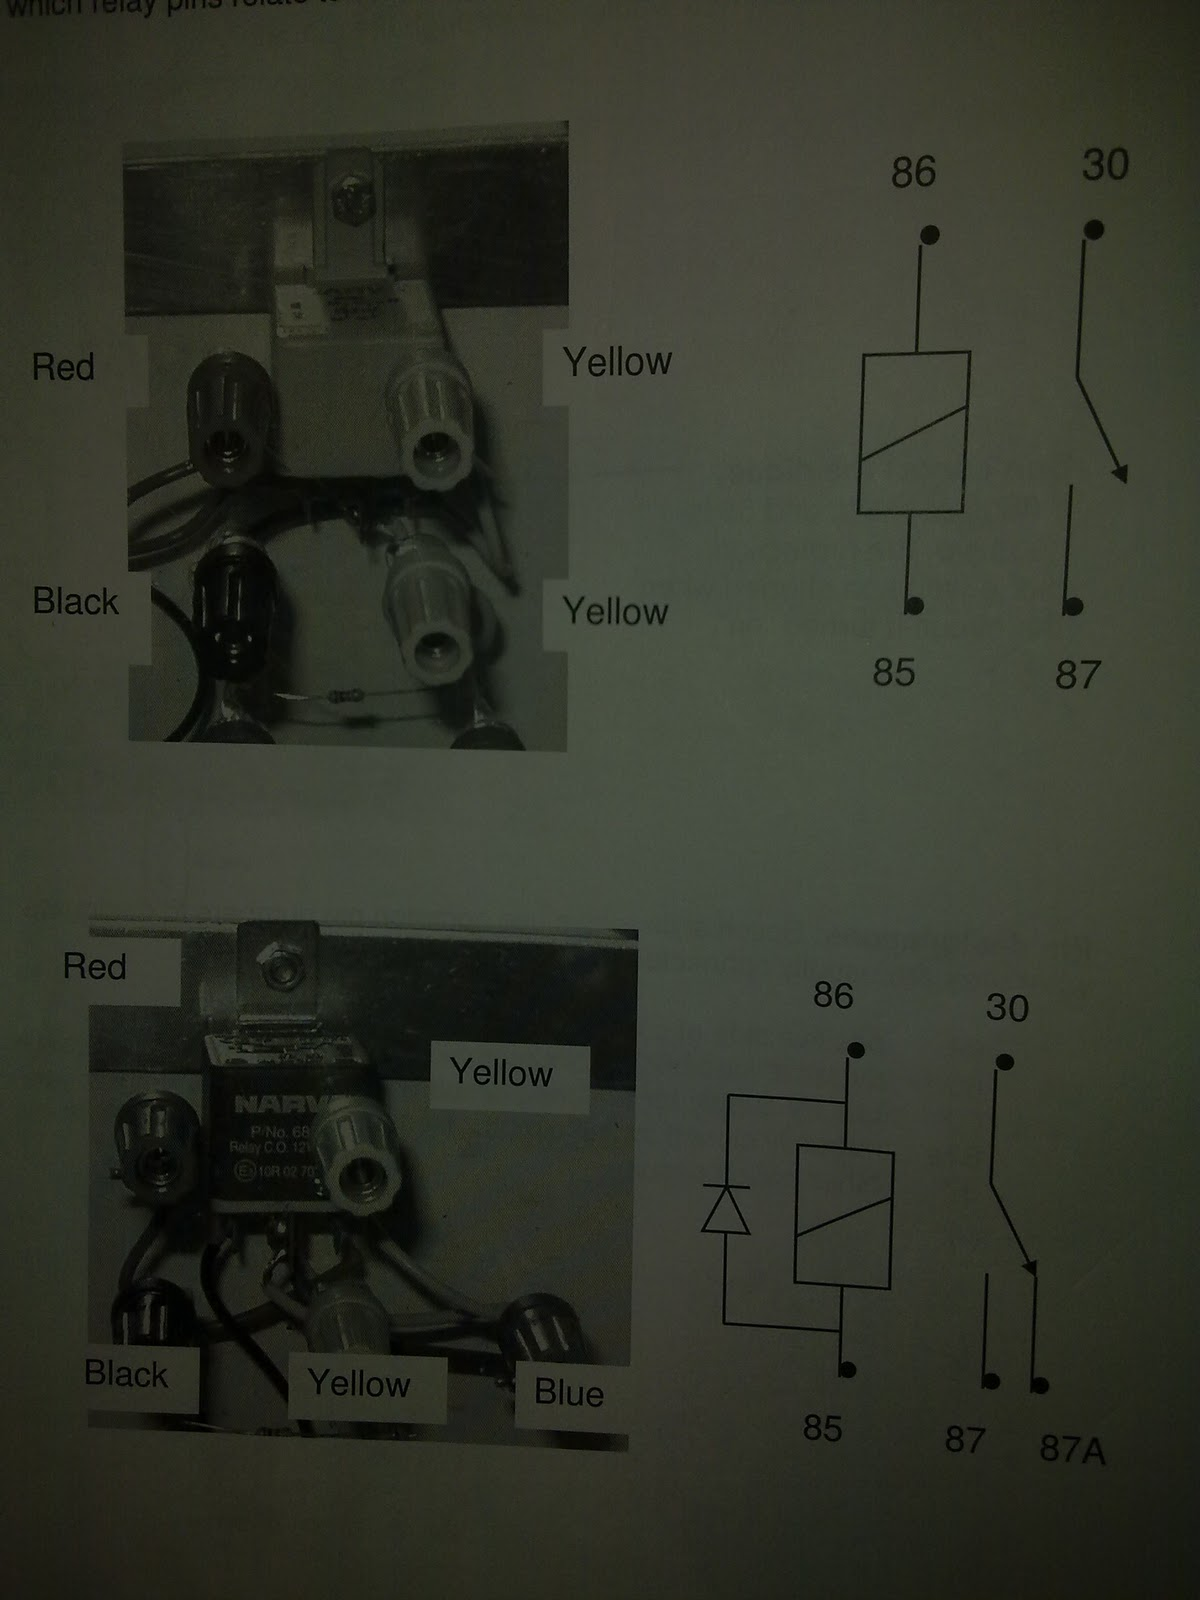 hight resolution of 87a normally closed switch circuit 87 other switch circuit relay wiring on electrical boards the diagrams and